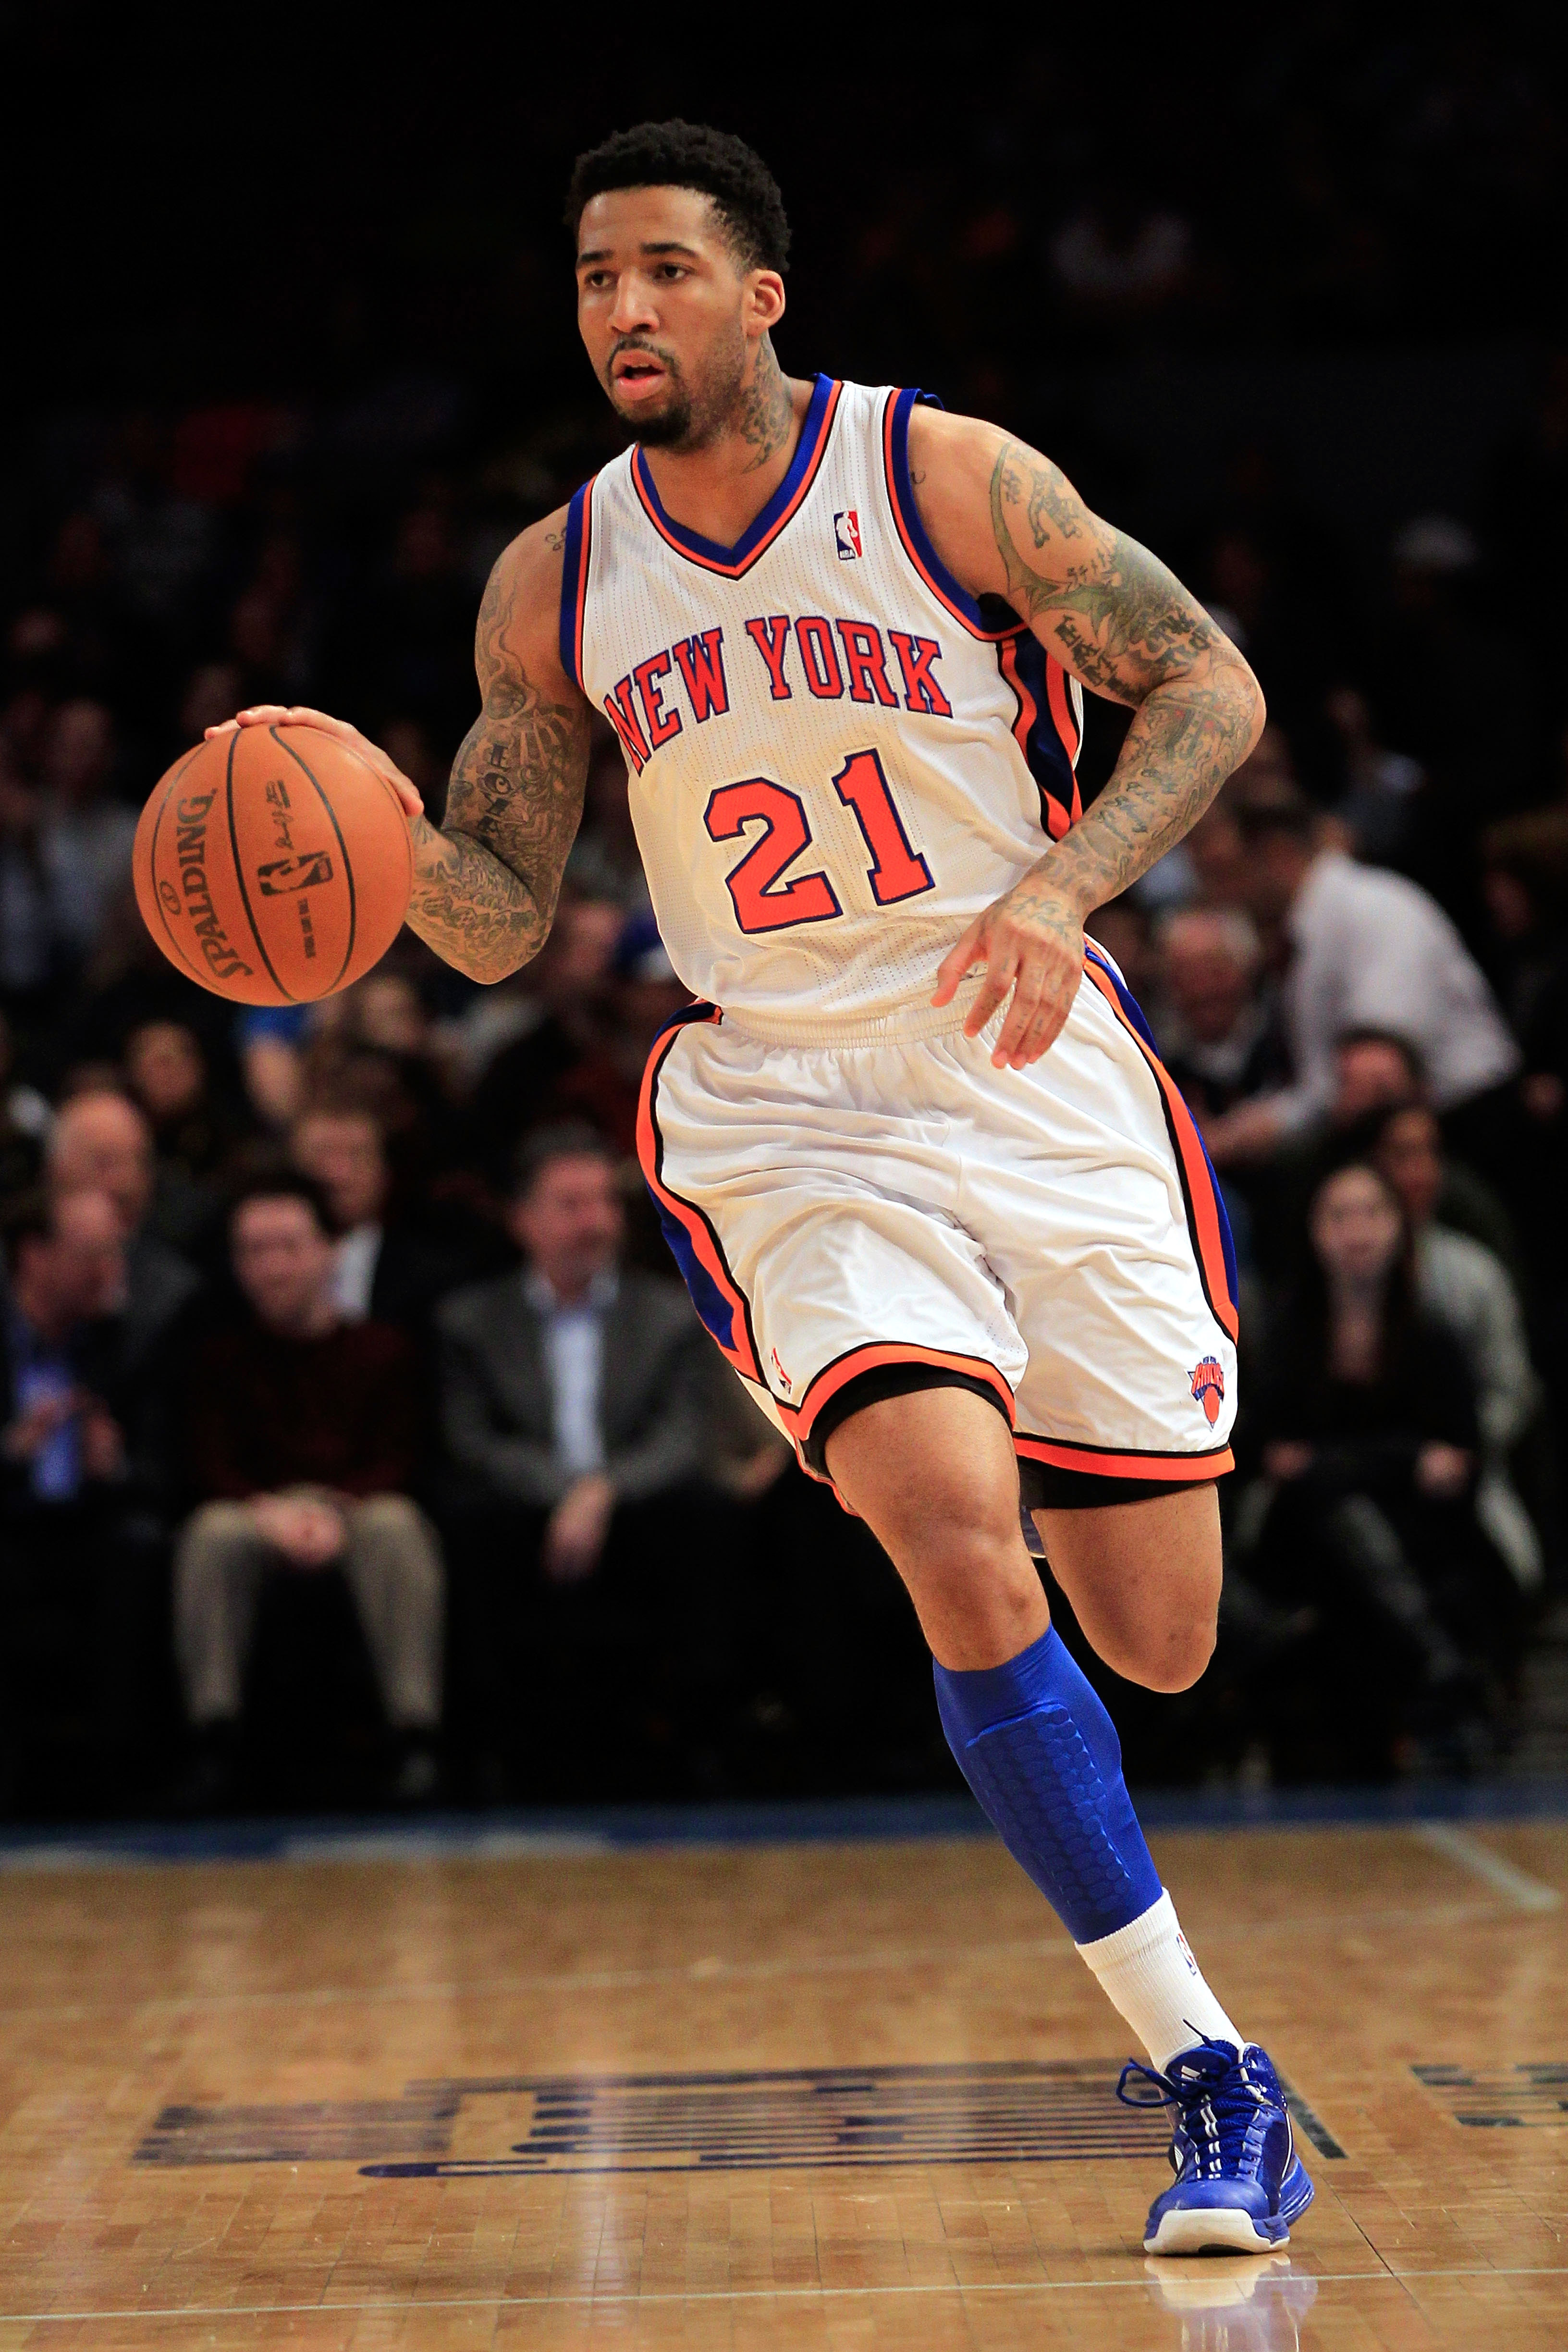 NEW YORK, NY - JANUARY 14: Wilson Chandler #21 of the New York Knicks dribbles against the Sacramento Kings at Madison Square Garden on January 14, 2011 in New York City. NOTE TO USER: User expressly acknowledges and agrees that, by downloading and or usi